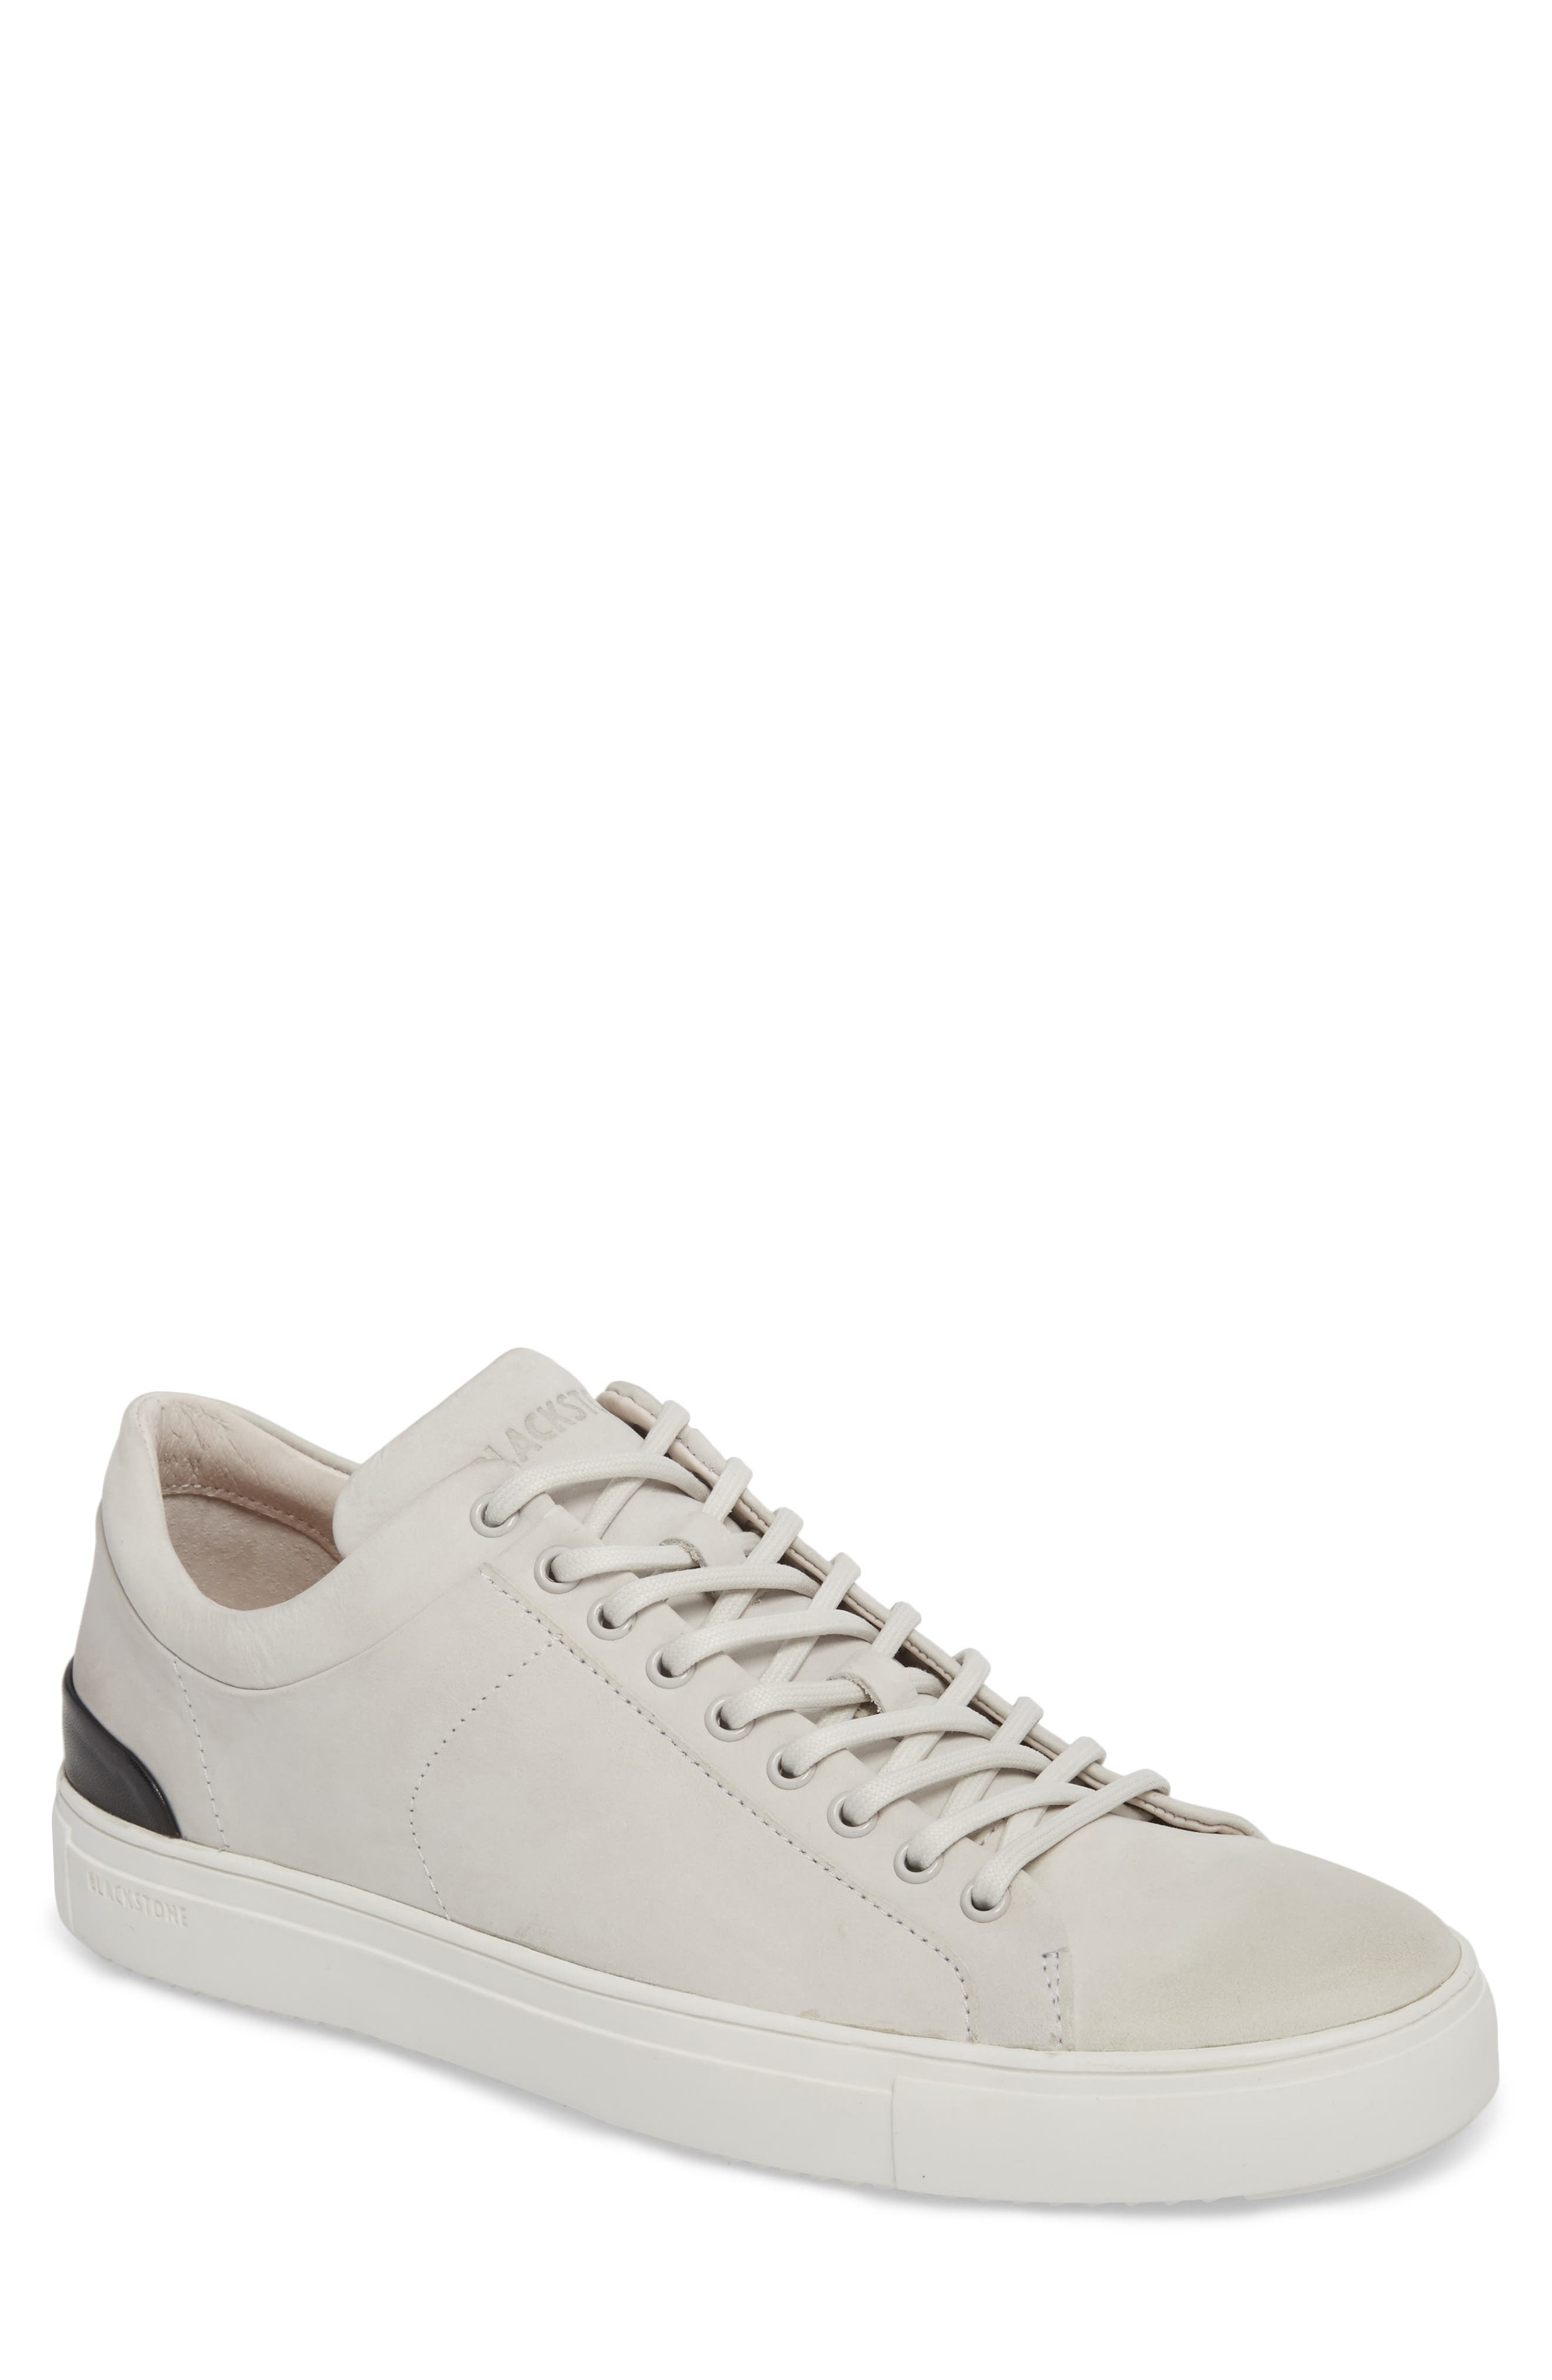 Blackstone PM56 Low Top Sneaker (Men)